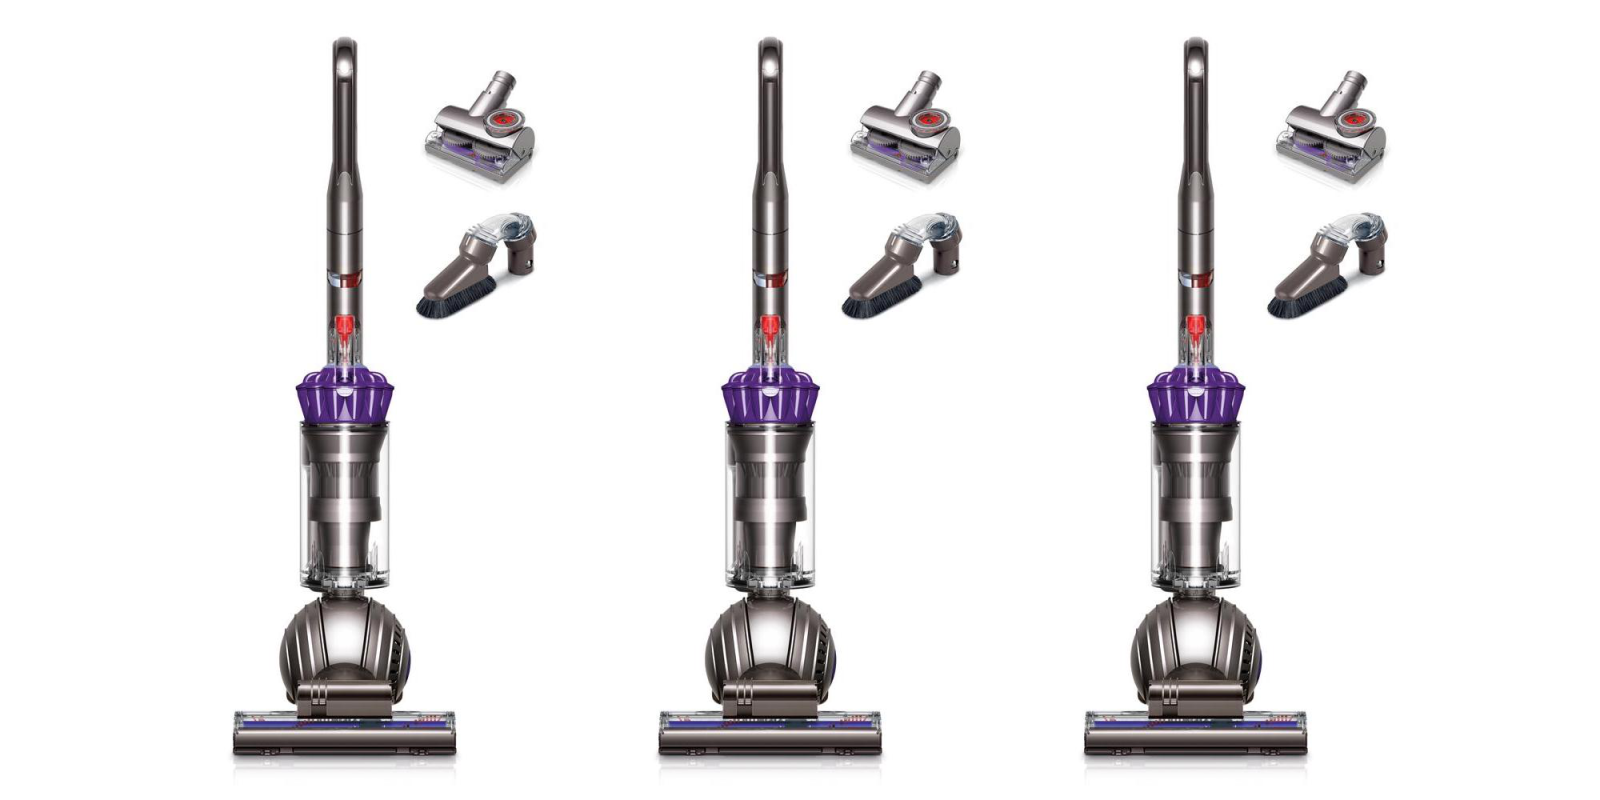 Dyson Slim Ball Animal Upright Vac down to $268 for today